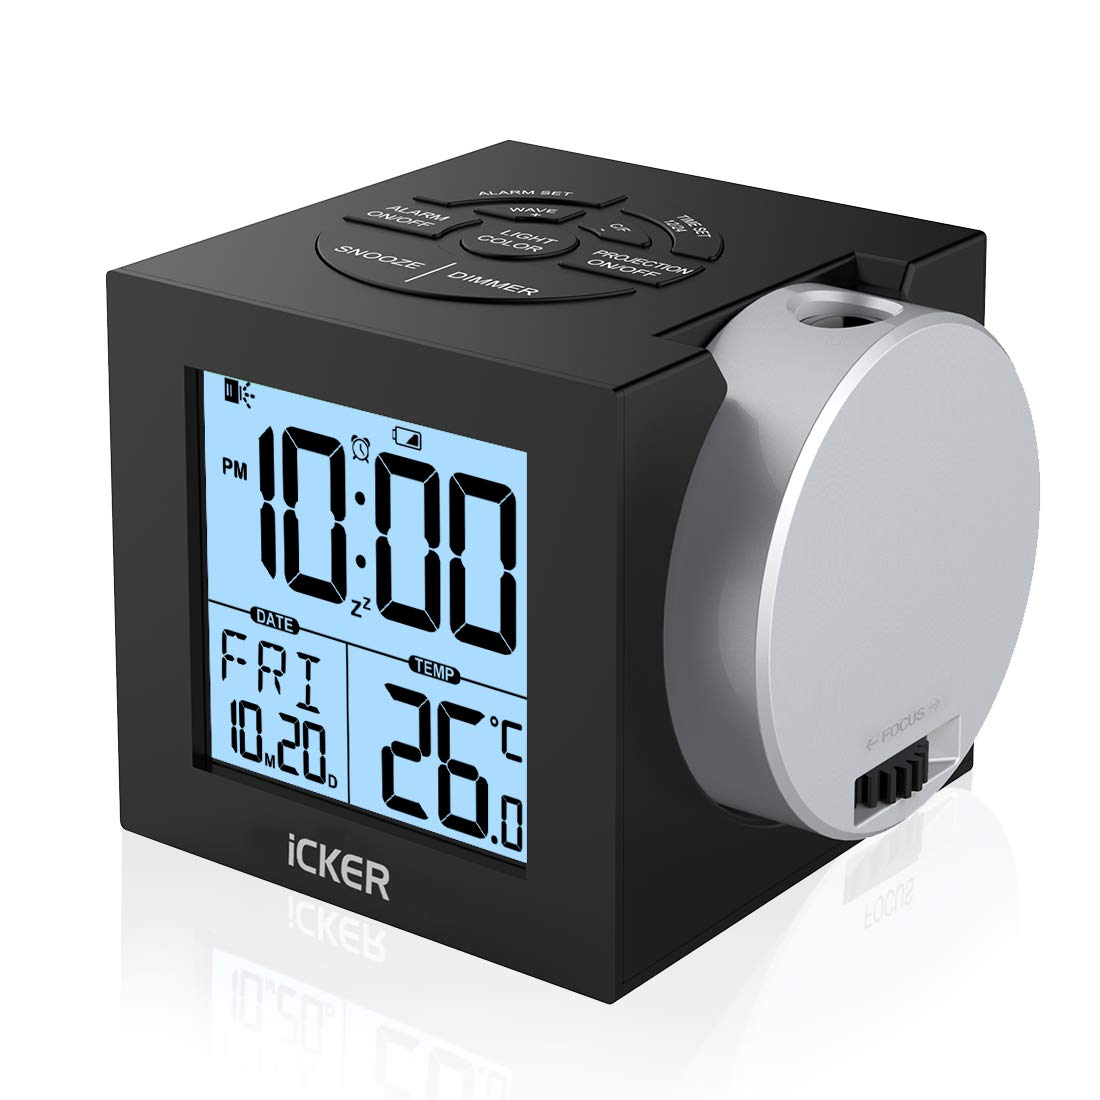 iCKER Projection Alarm Clock for Bedrooms, Digital Clock for Kids, 12/24 Hours, Indoor Temperature/Day/Date Display with Dimming, 7-Color Nightlight, Battery & DC Powered by iCKER